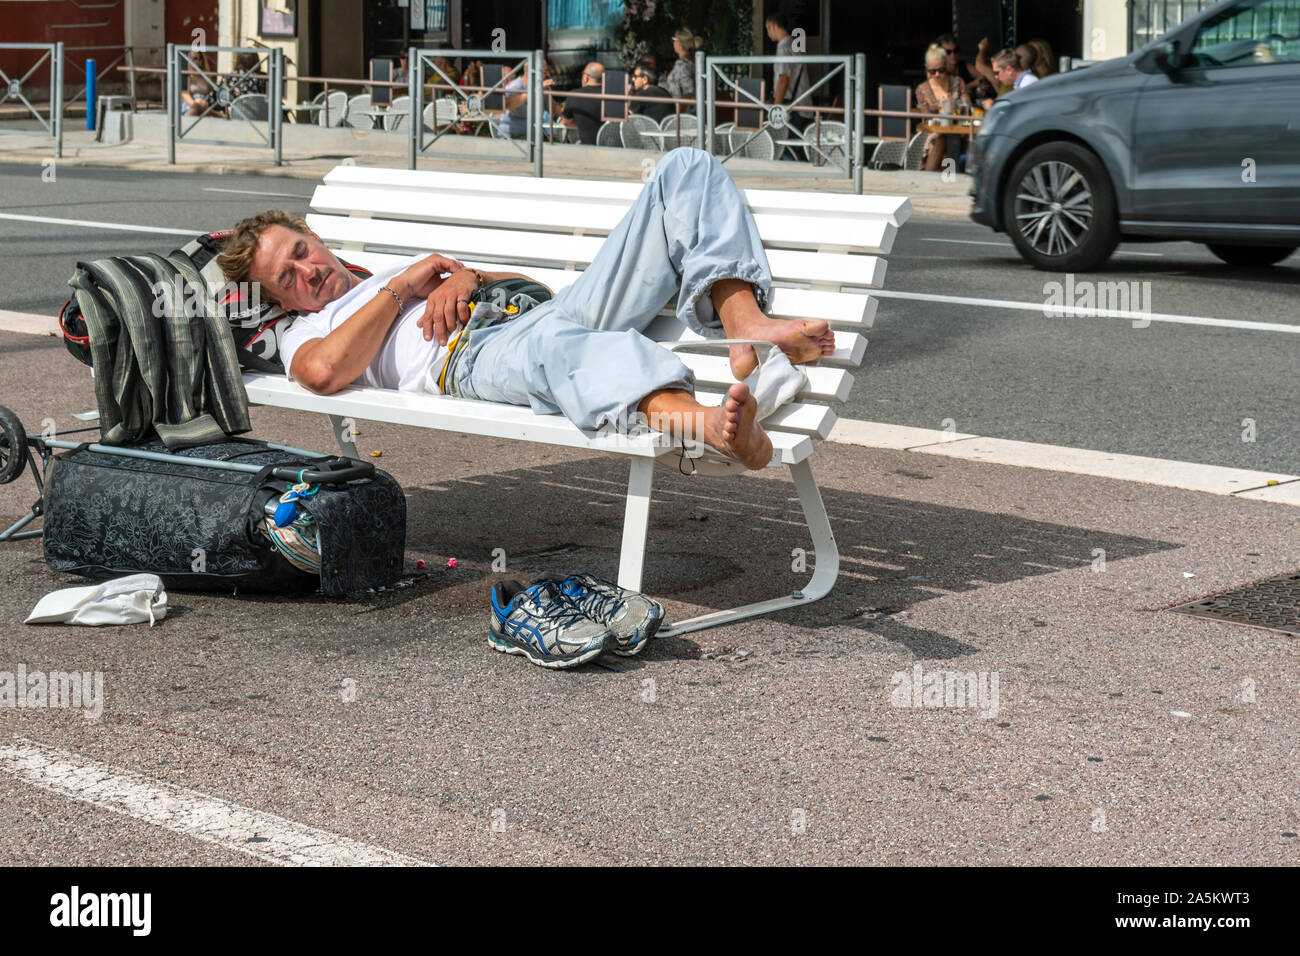 A tired male adult traveler sleeps on a bench on the Promenade des Anglais in the Mediterranean city of Nice, France. Stock Photo